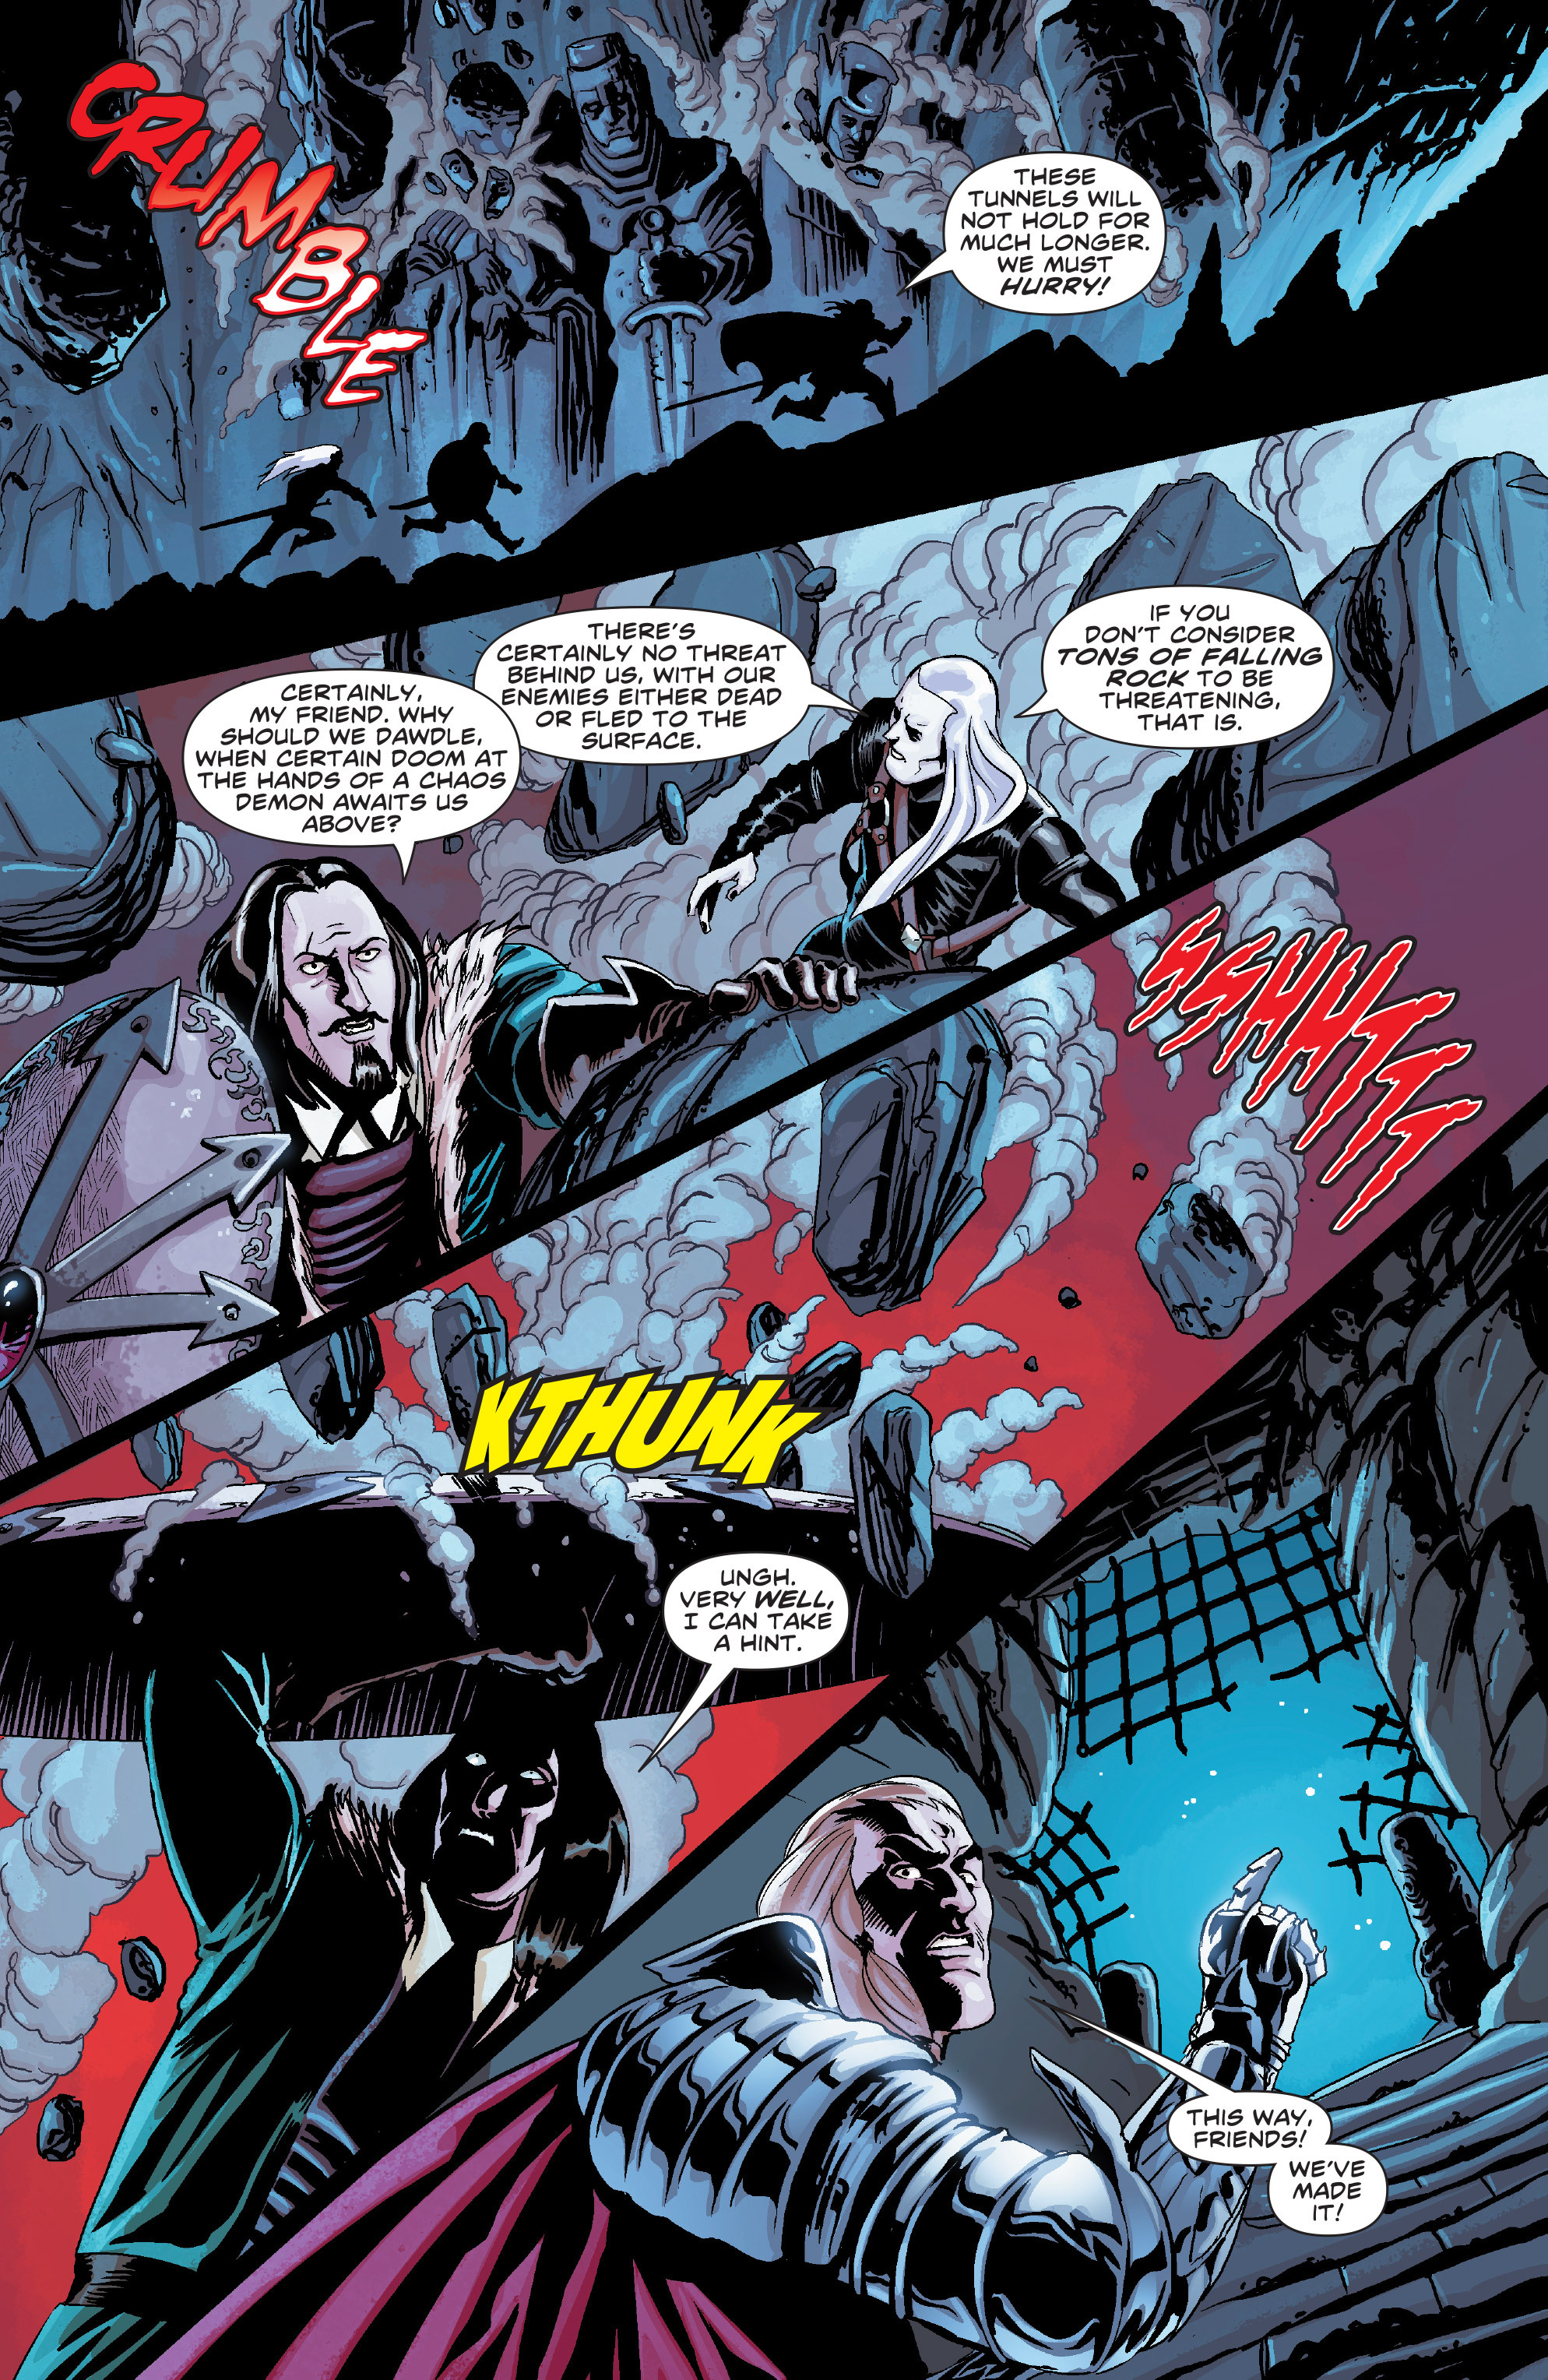 Read online Elric: The Balance Lost comic -  Issue # TPB 2 - 13